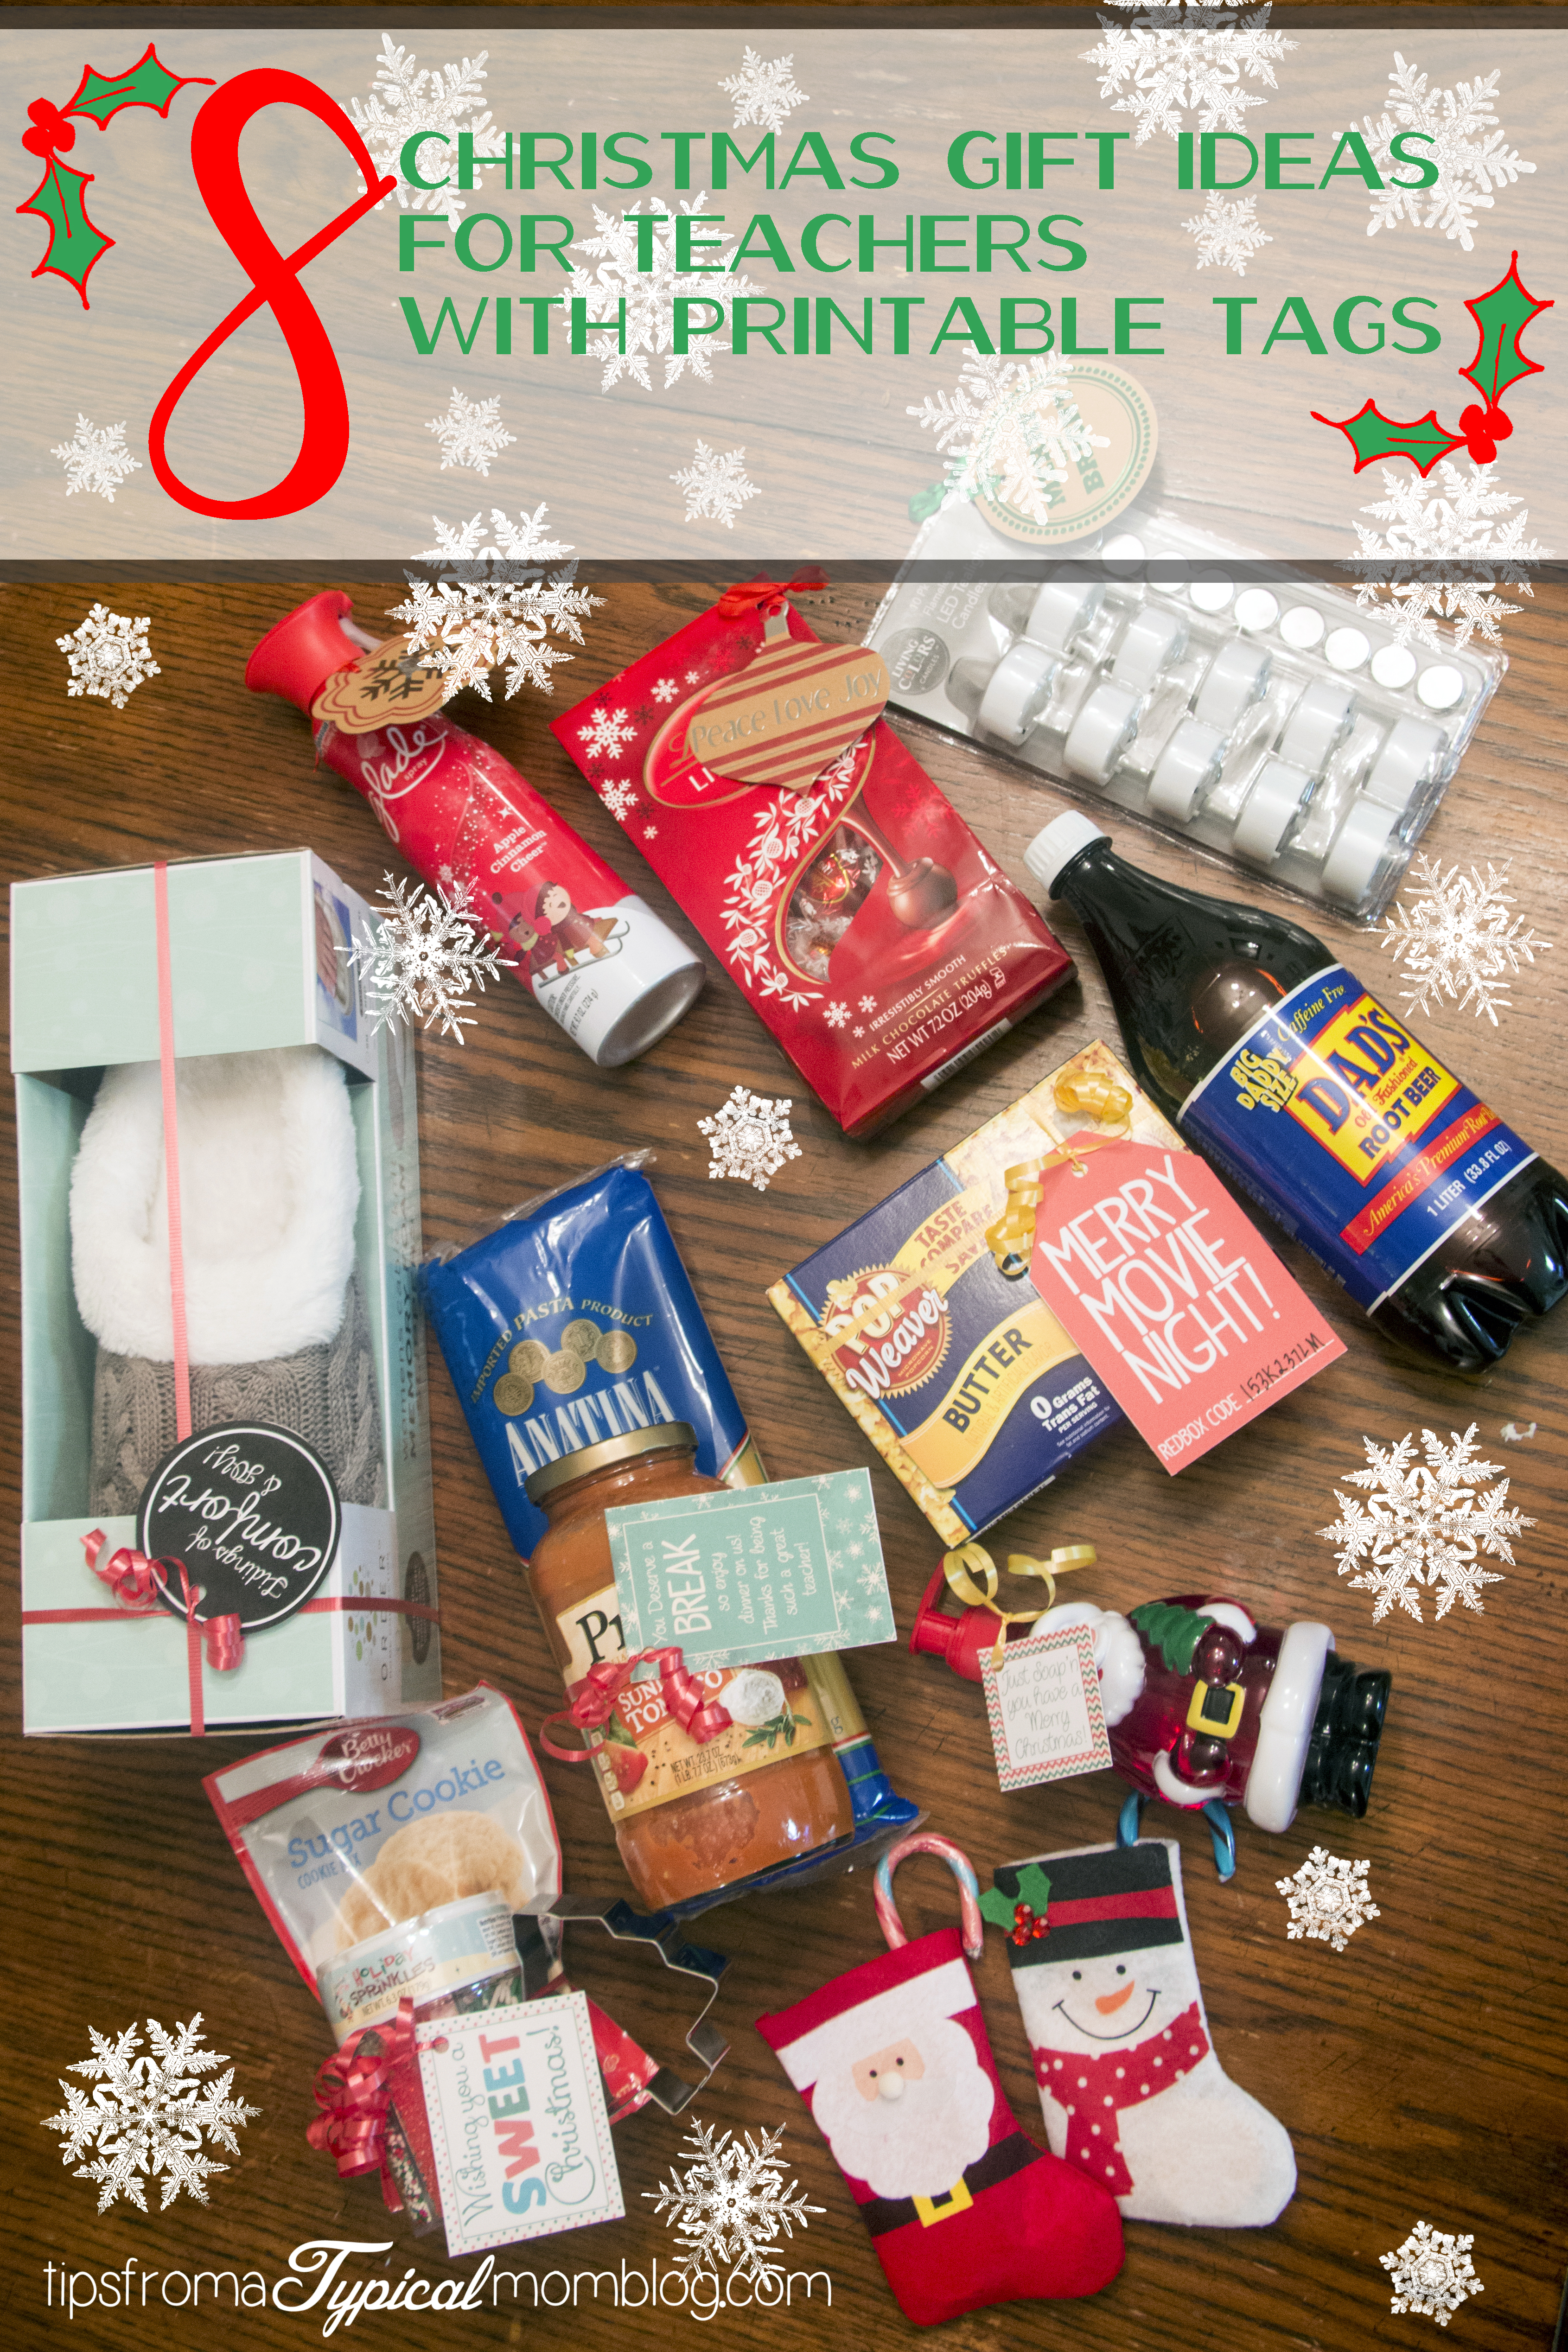 Exceptional Christmas Teachers Gifts Part - 7: 8 Quick And Easy Teacher Christmas Gift Ideas With Printable Tags - Tips  From A Typical Mom